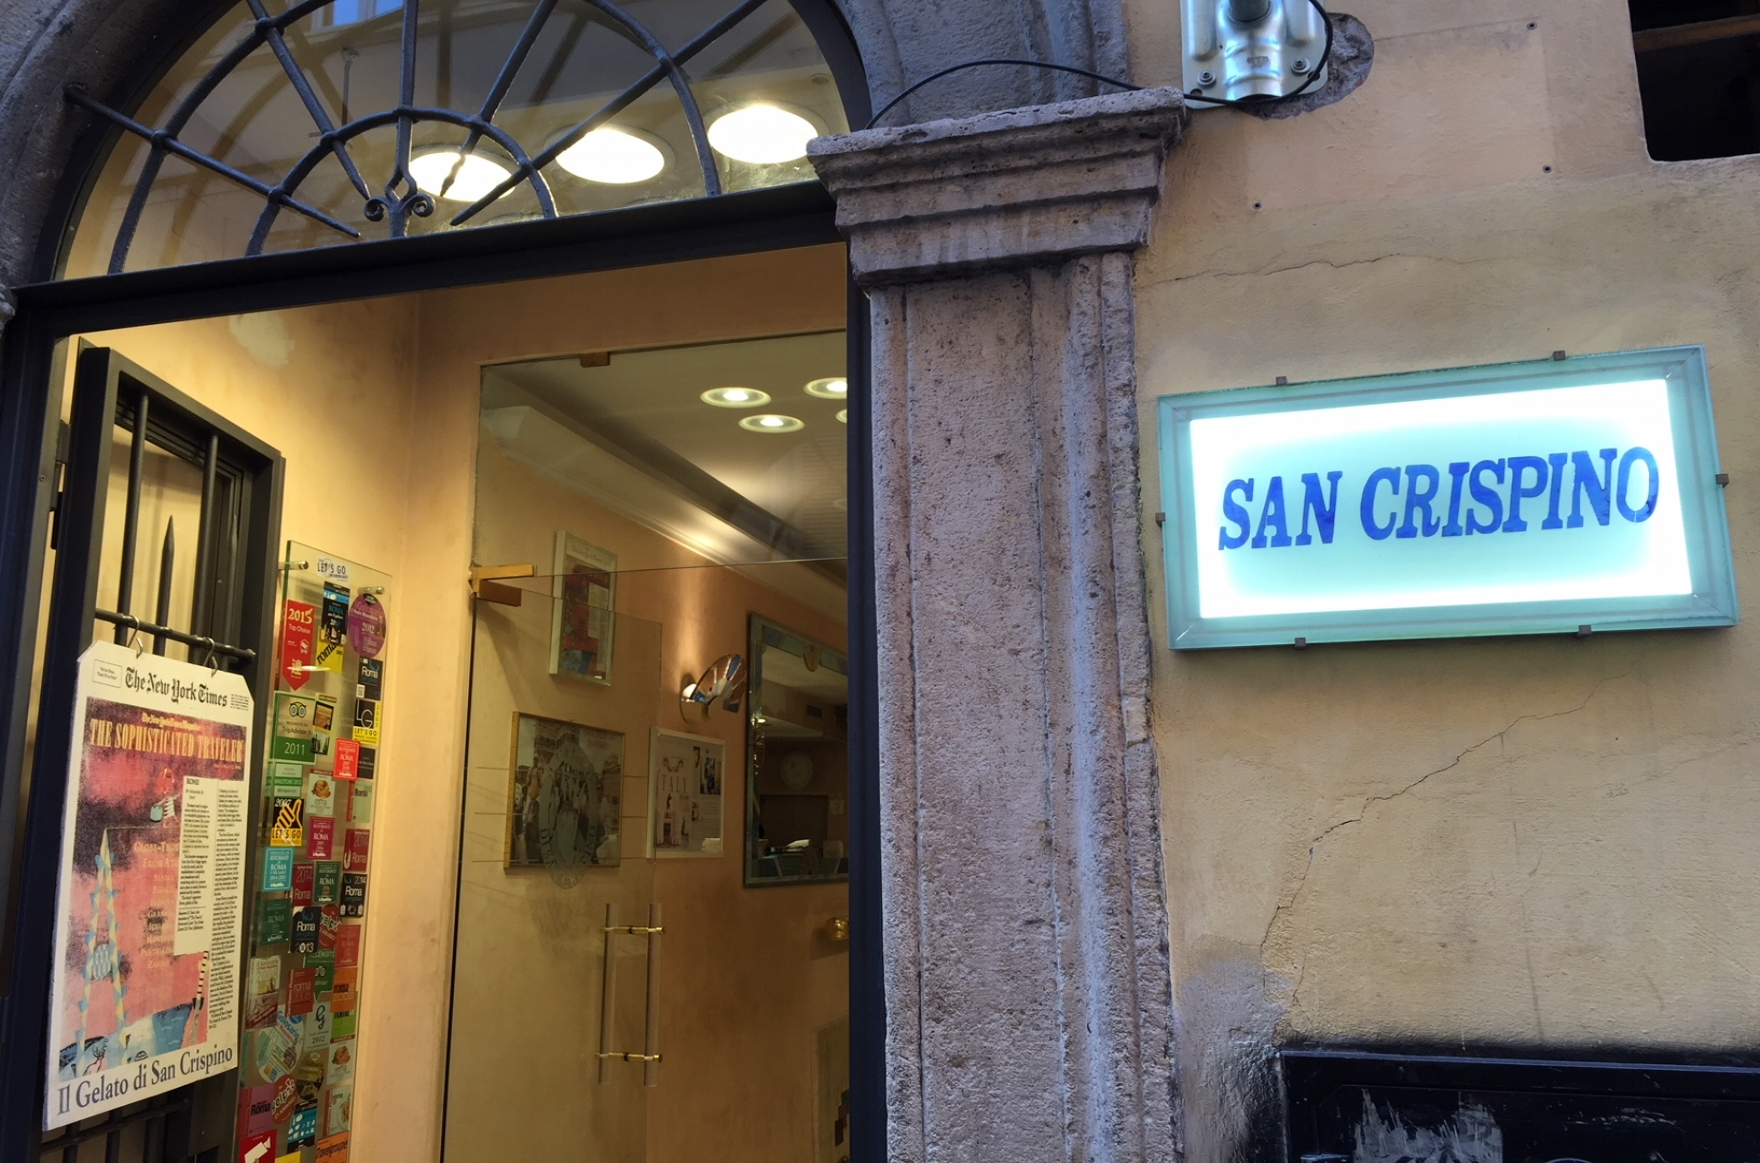 san crispino - Arguably the best, and most famous (partially due to the name drop in Eat,Pray,Love), gelato shop in town. The flavors are all natural and seasonal. This is a must visit if you're in the Trevi Fountain/Spanish Steps area of town.